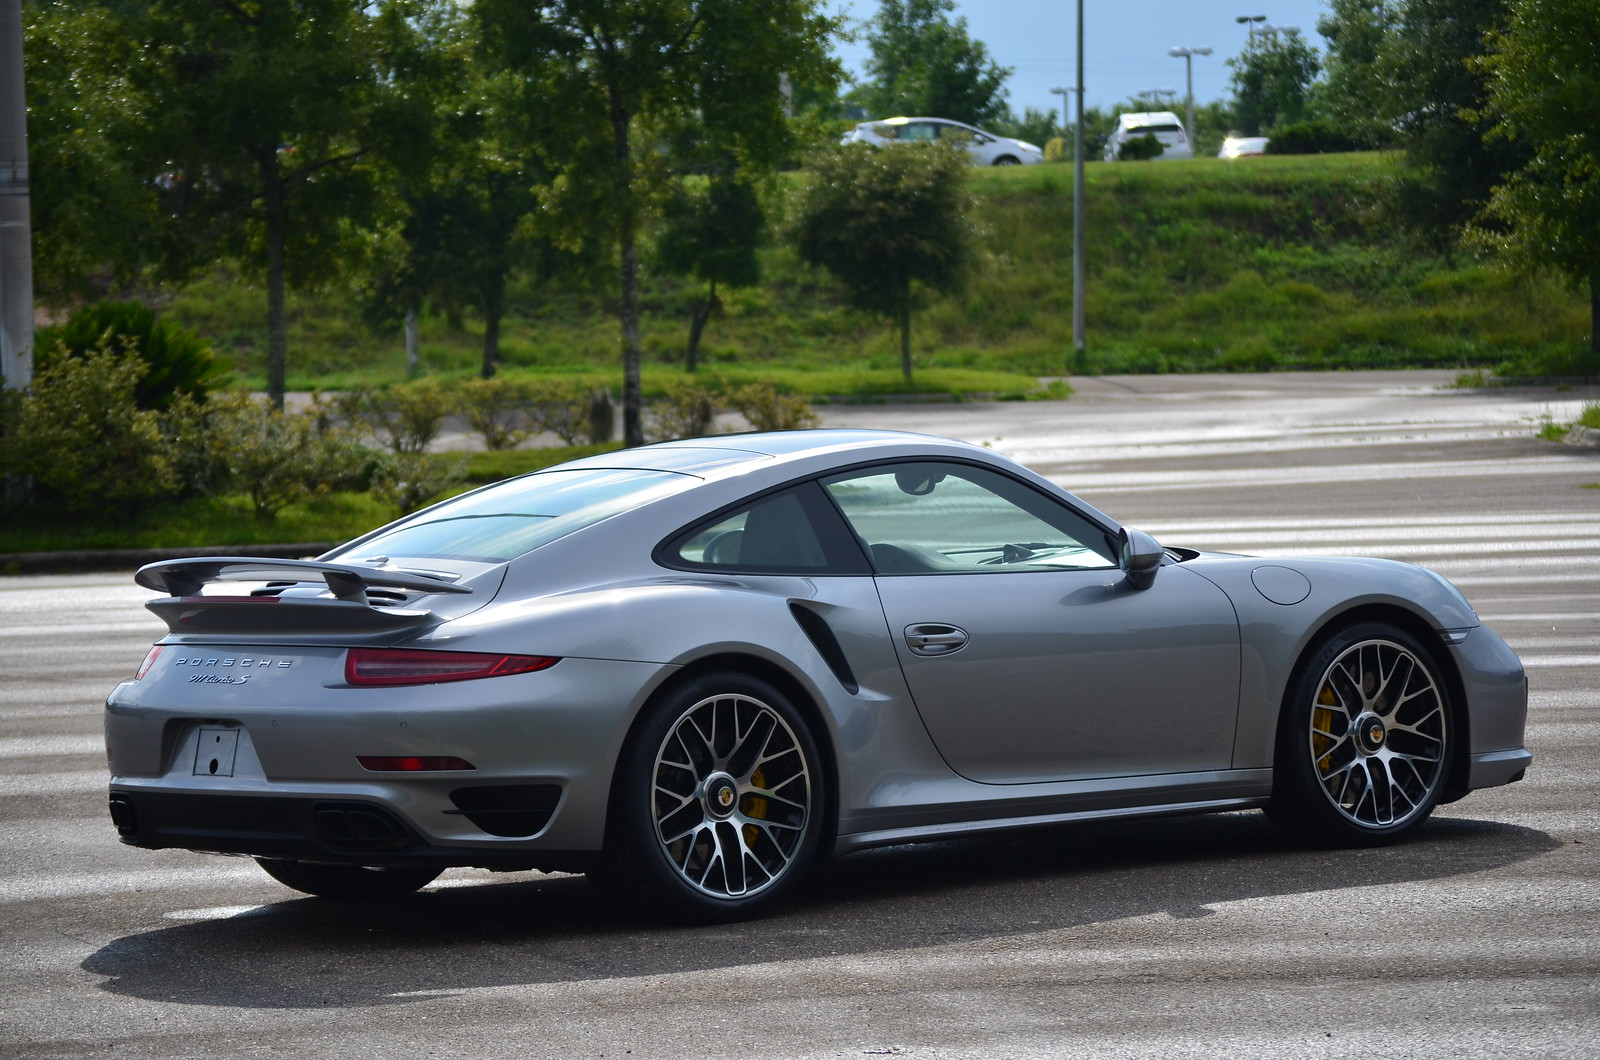 2015 Turbo S Coupe Gt Silver Loaded And Perfect Capital